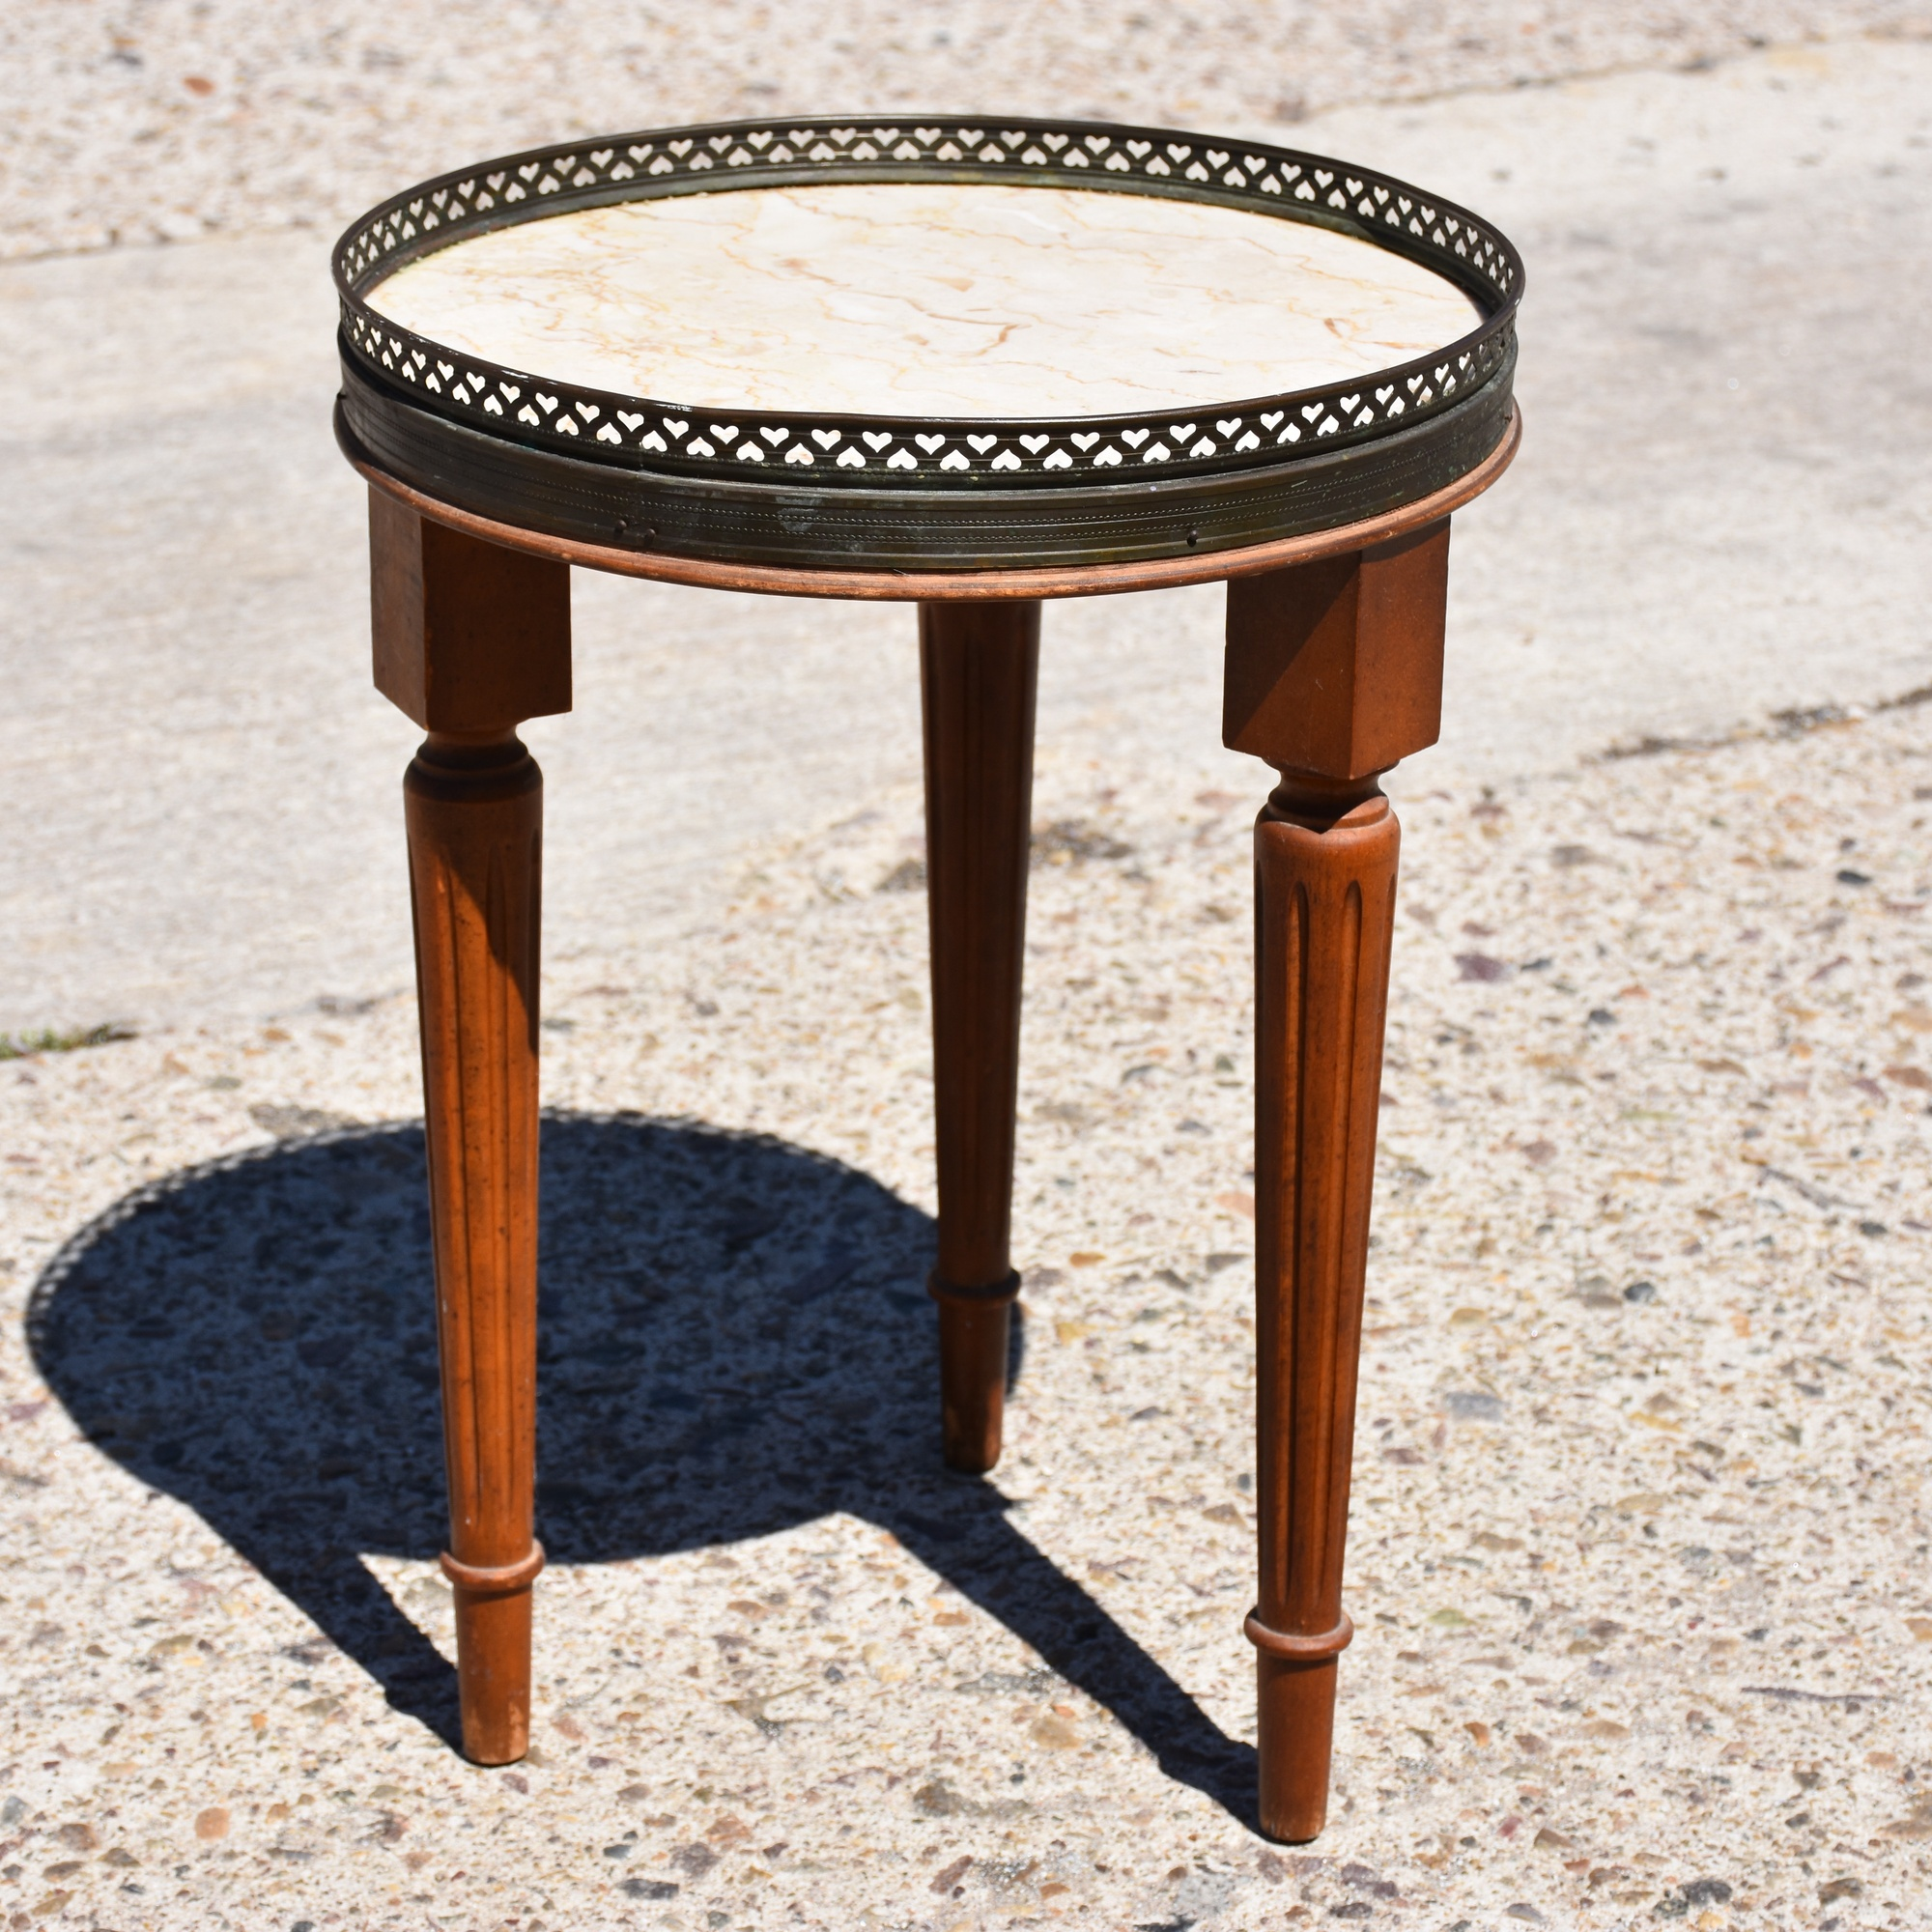 Attractive Small Vintage Round 3 Leg Display Decorator Table | Loveseat Vintage  Furniture San Diego